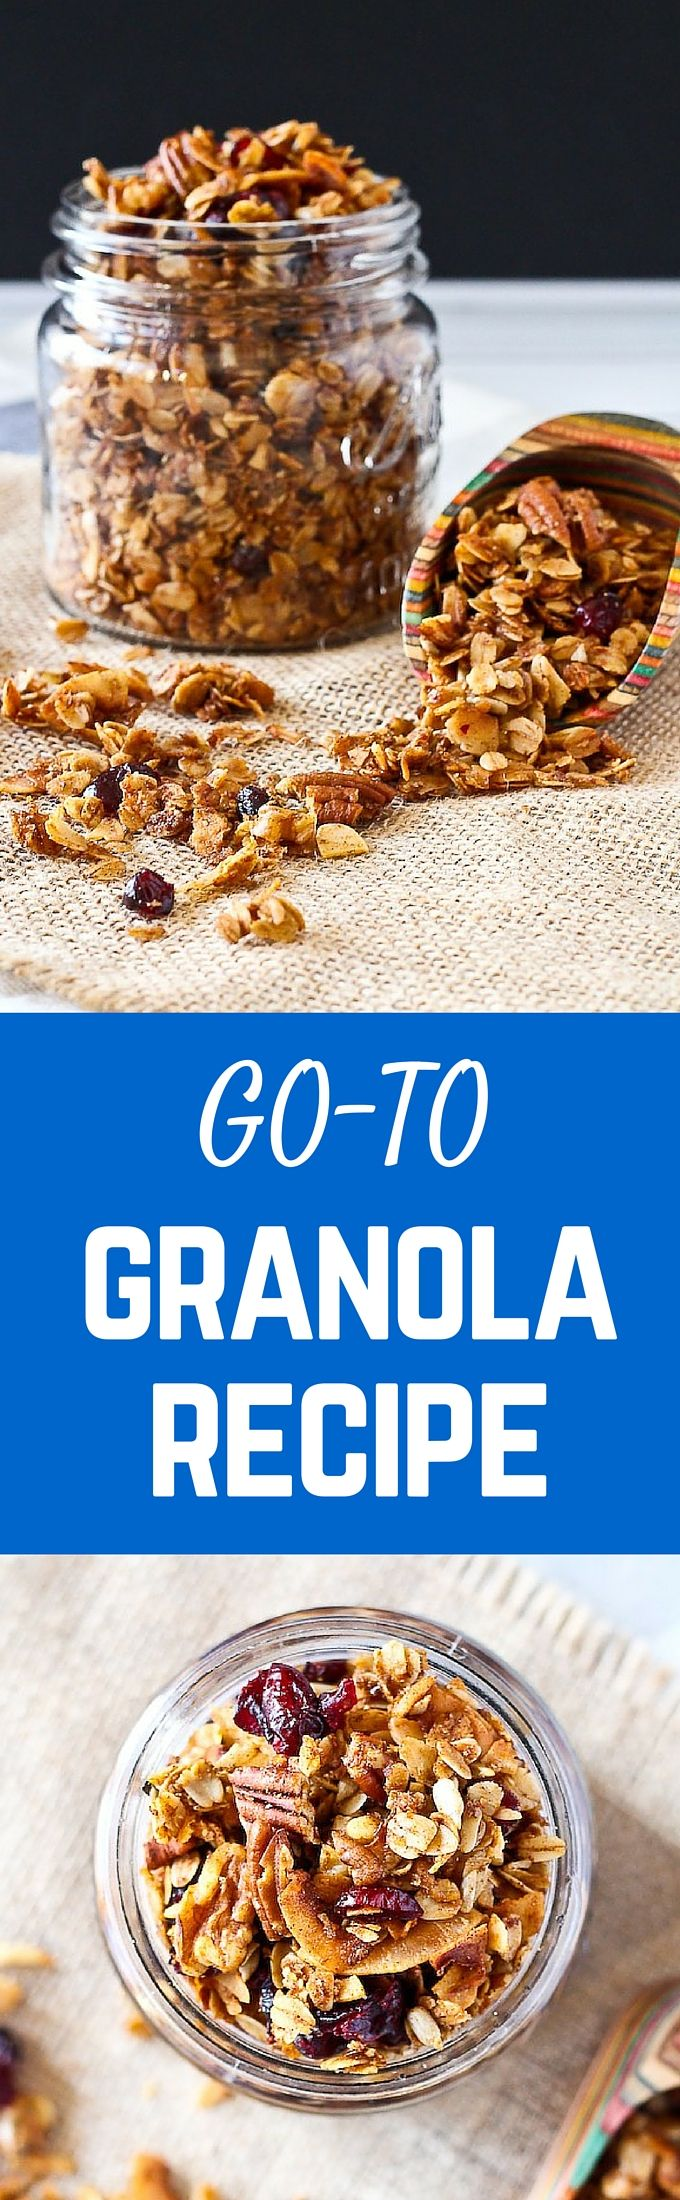 This easy granola recipe with pecans and cranberries will become your go-to granola recipe - you won't ever be buying granola from the store again. This is way too easy! Get the recipe on RachelCooks.com!